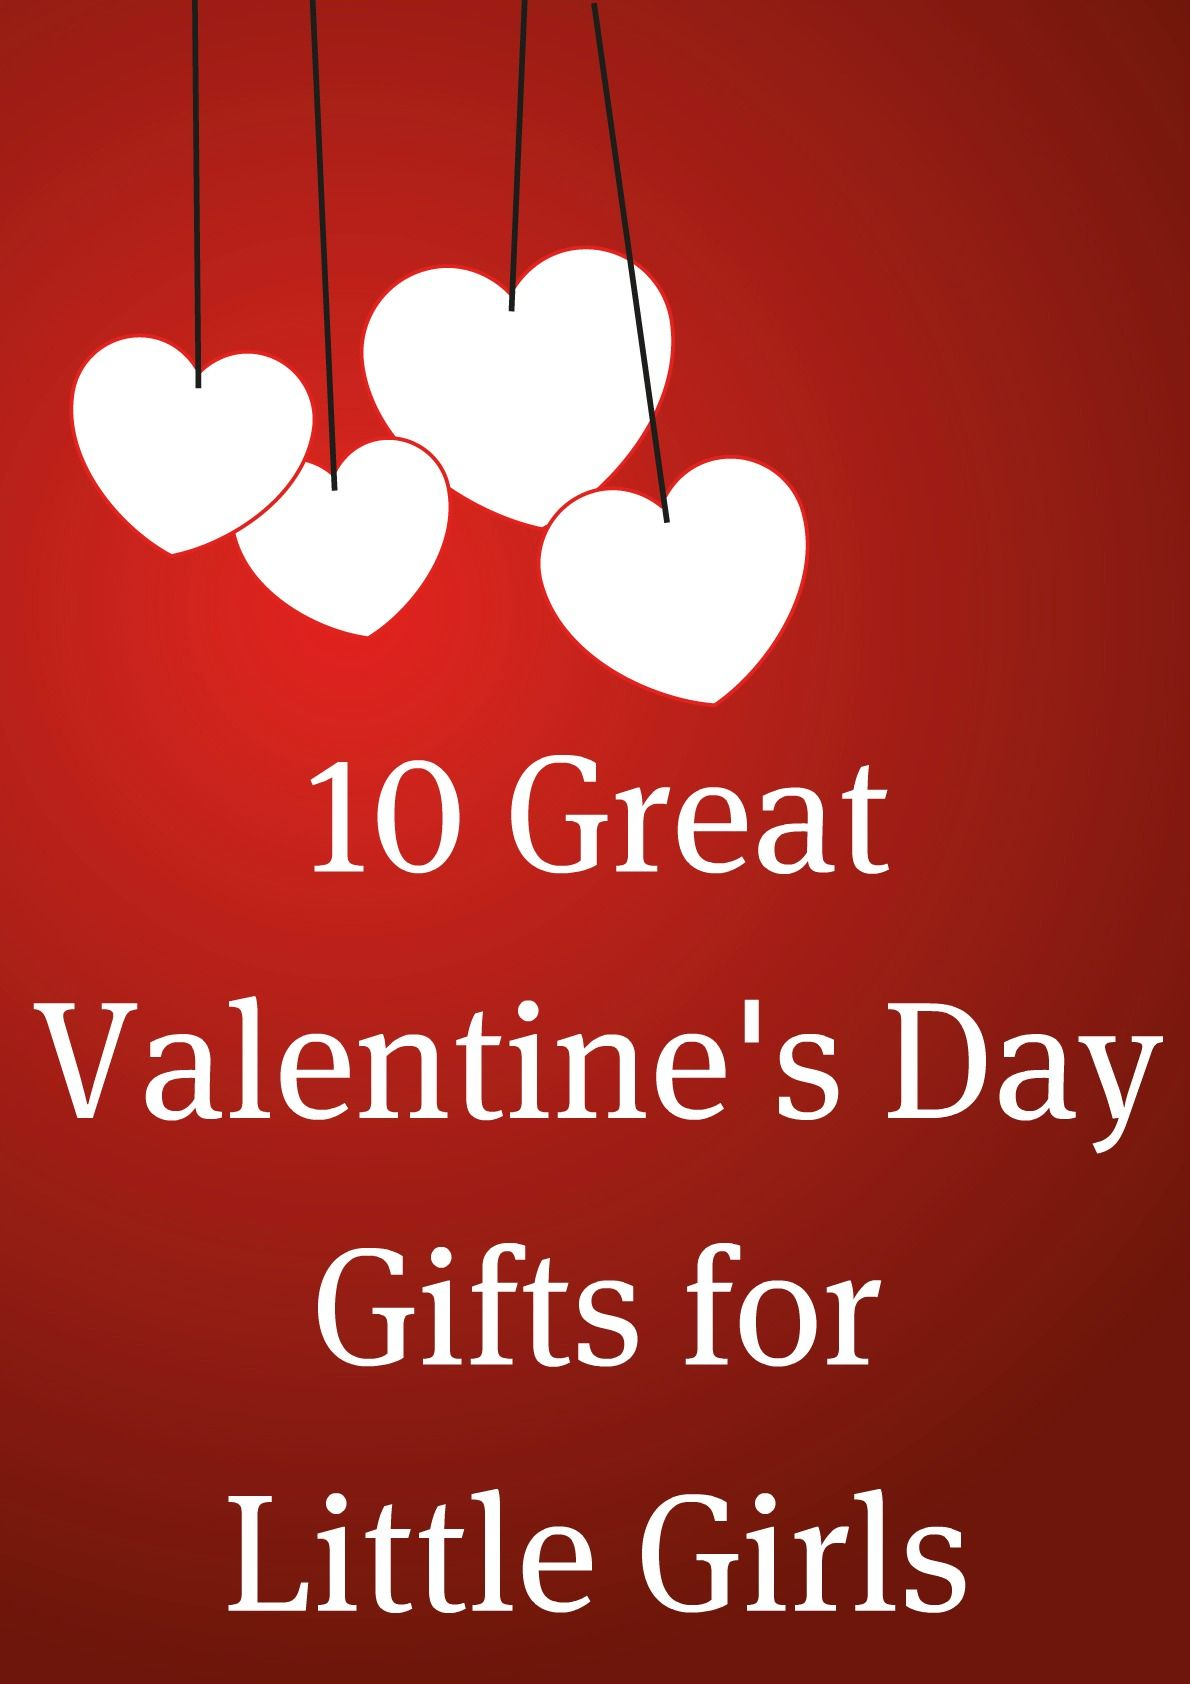 Great ValentineS Day Gifts For Little Girls  ValentineS Day